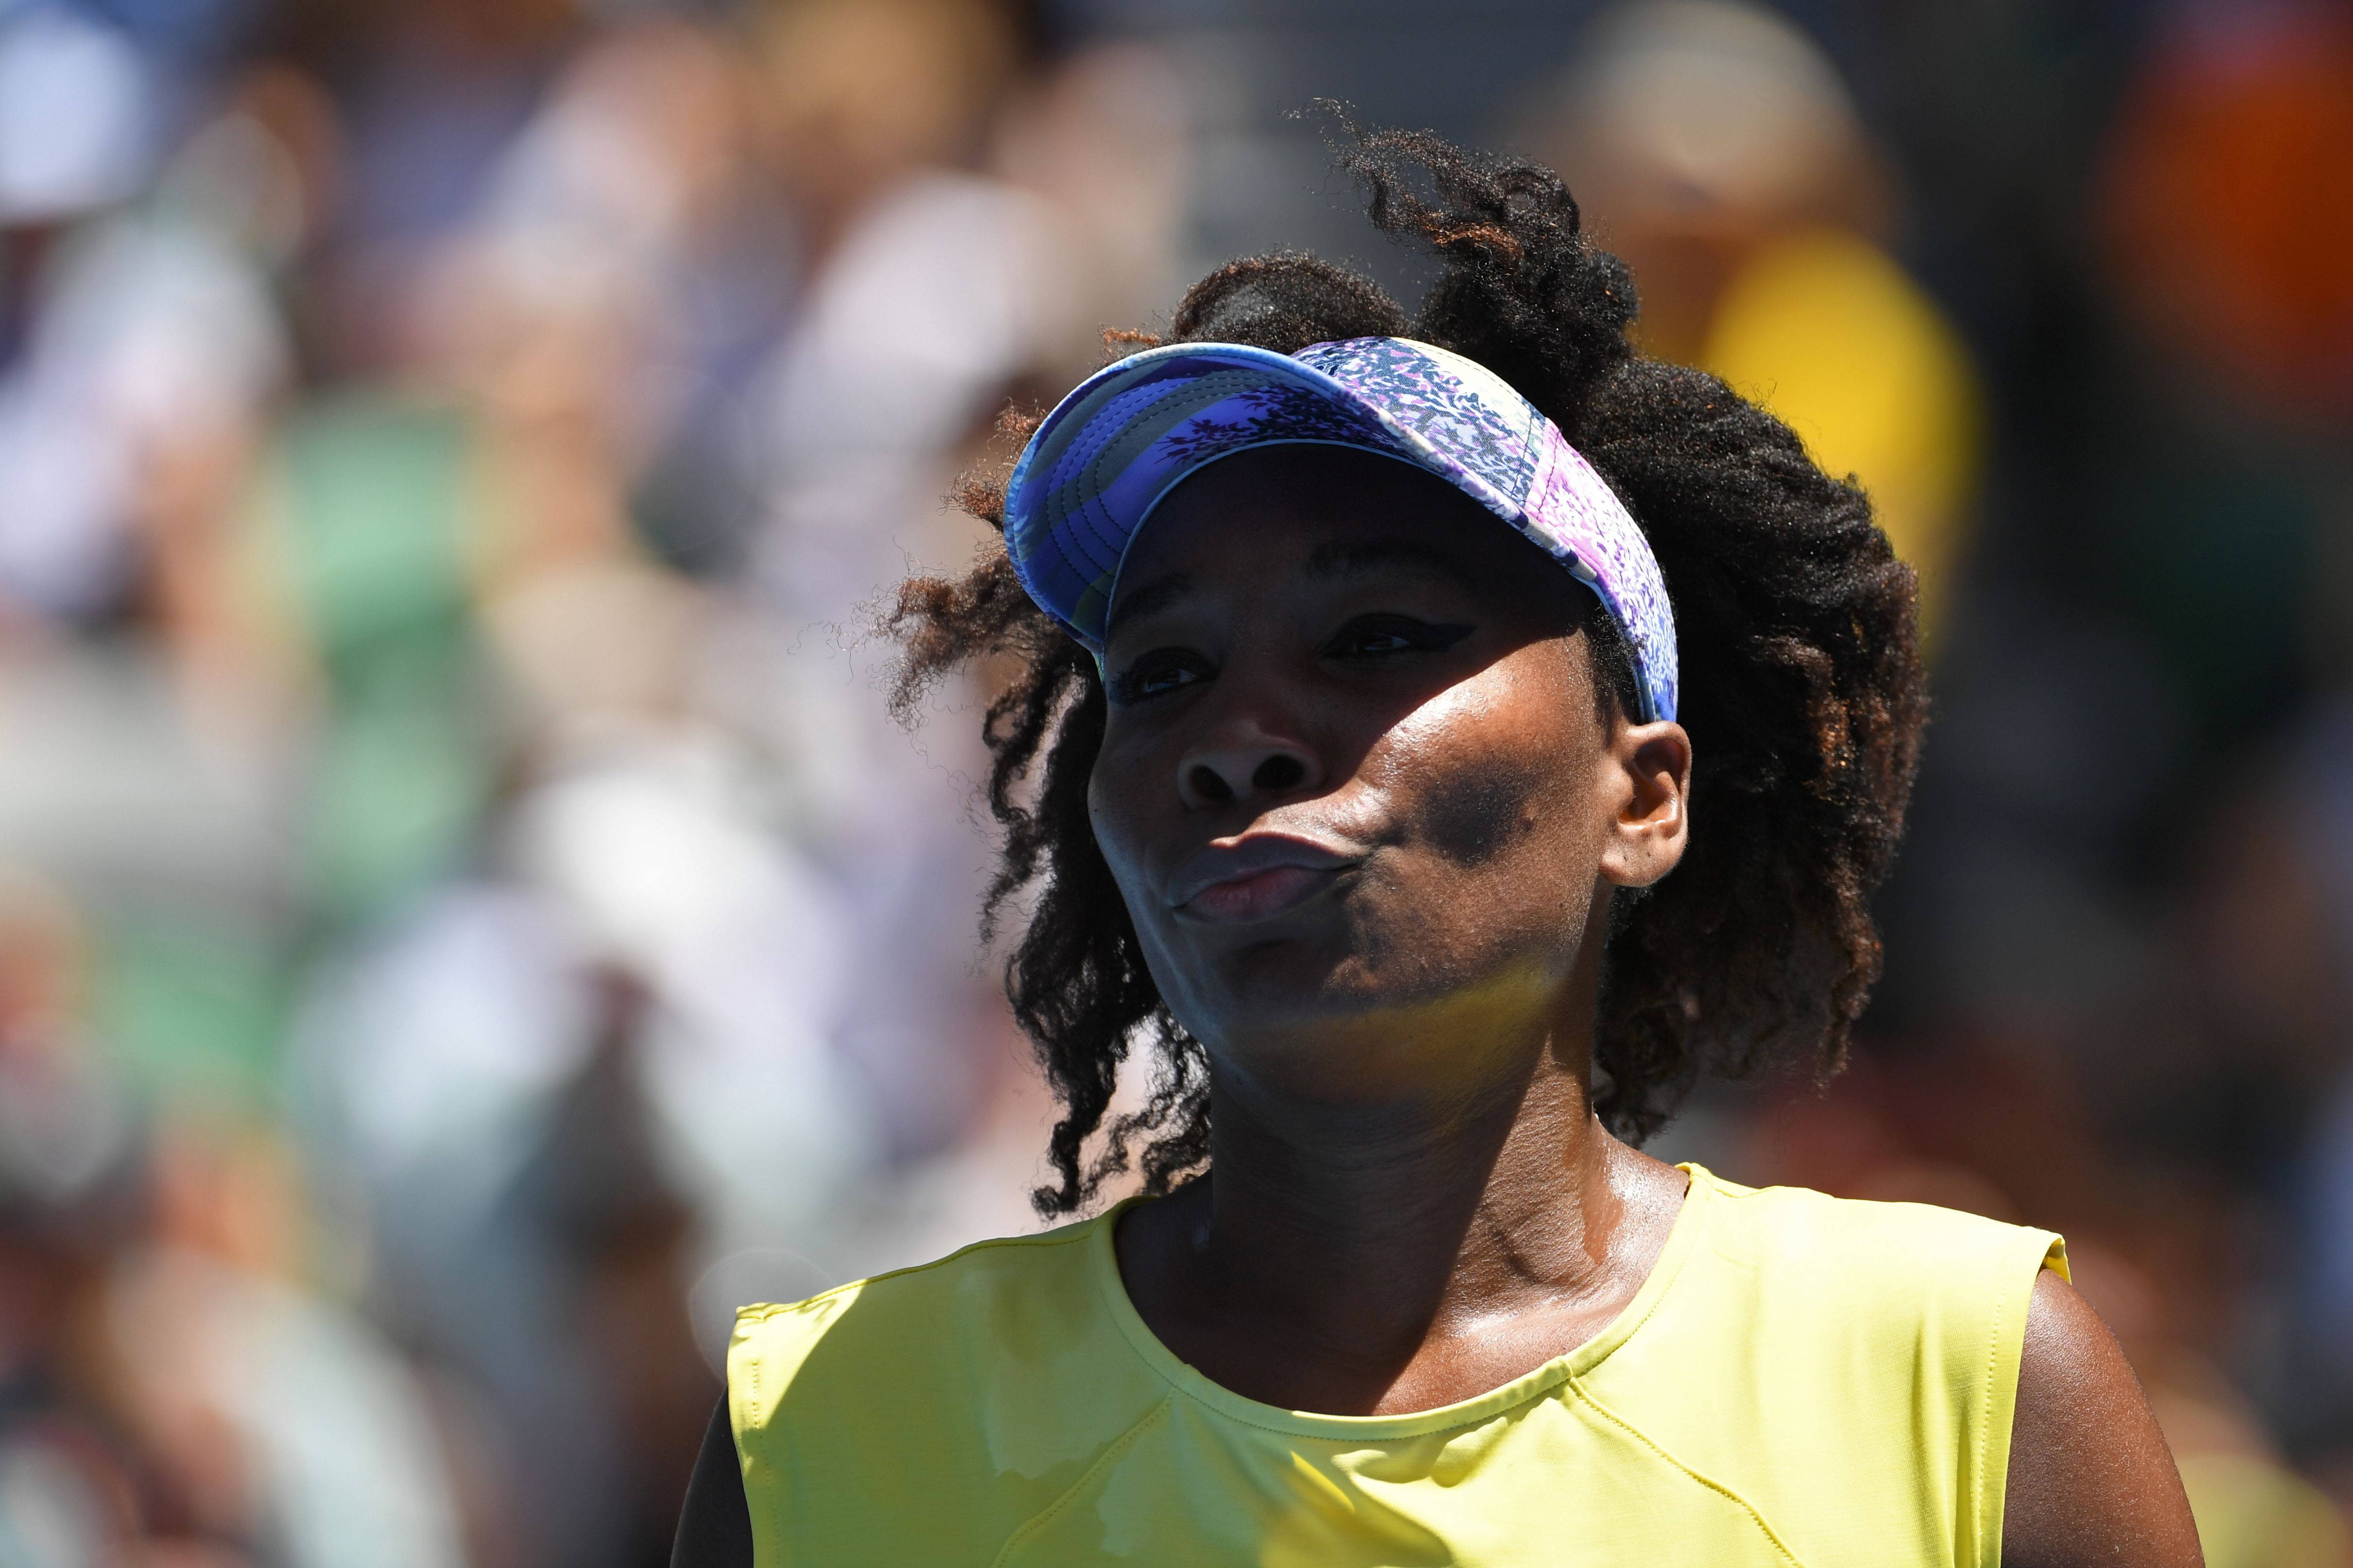 Broadcaster under fire after likening Venus Williams to a 'gorilla' during Australian Open match